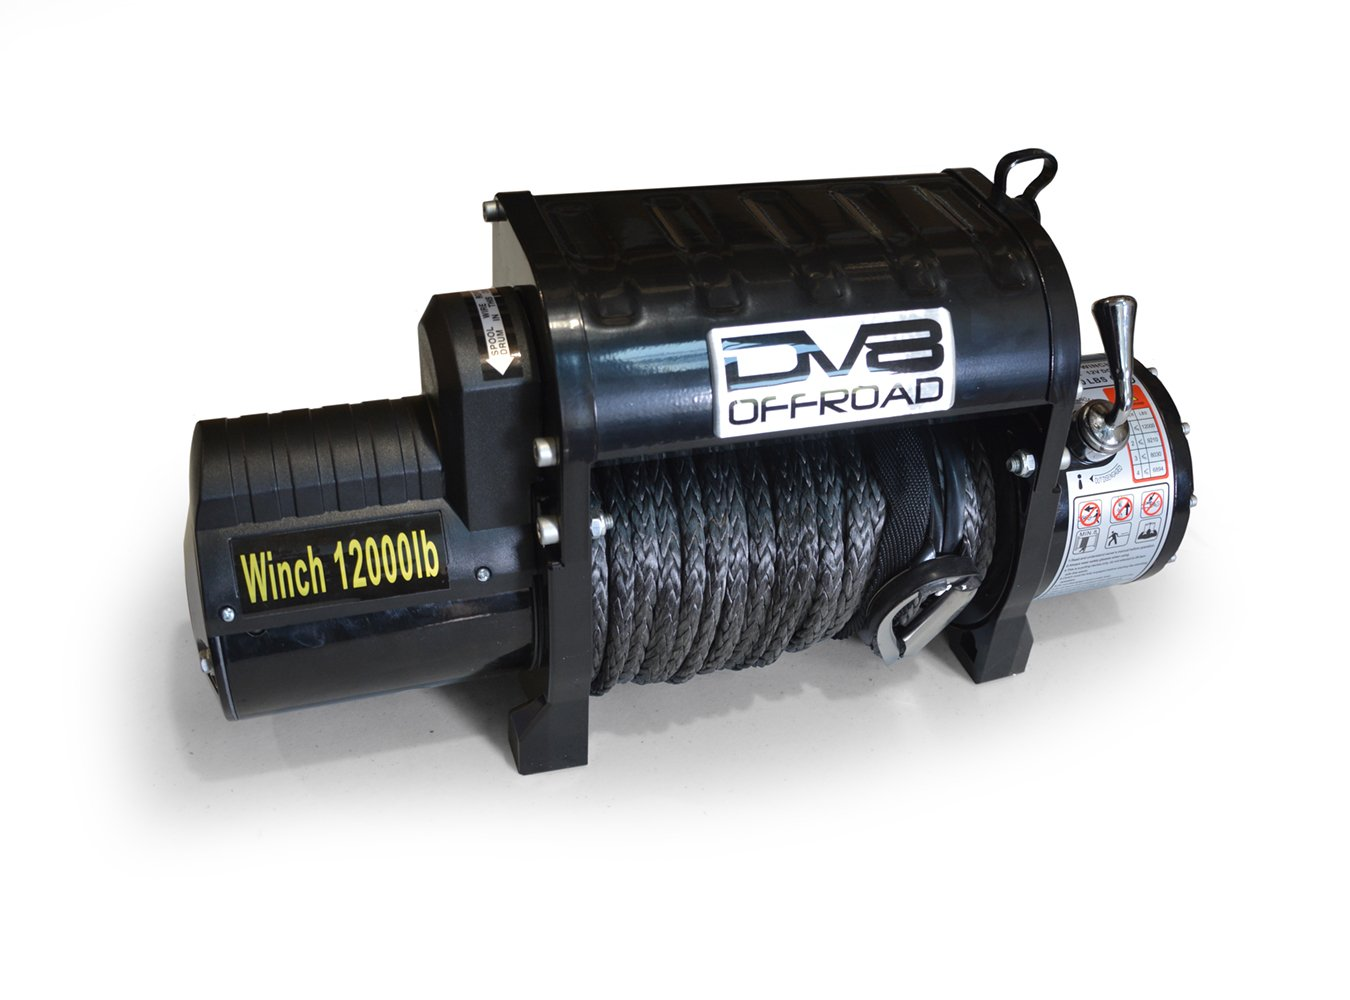 12000 LB Winch Black w/Synthetic Line and Wireless Remote DV8 Offroad